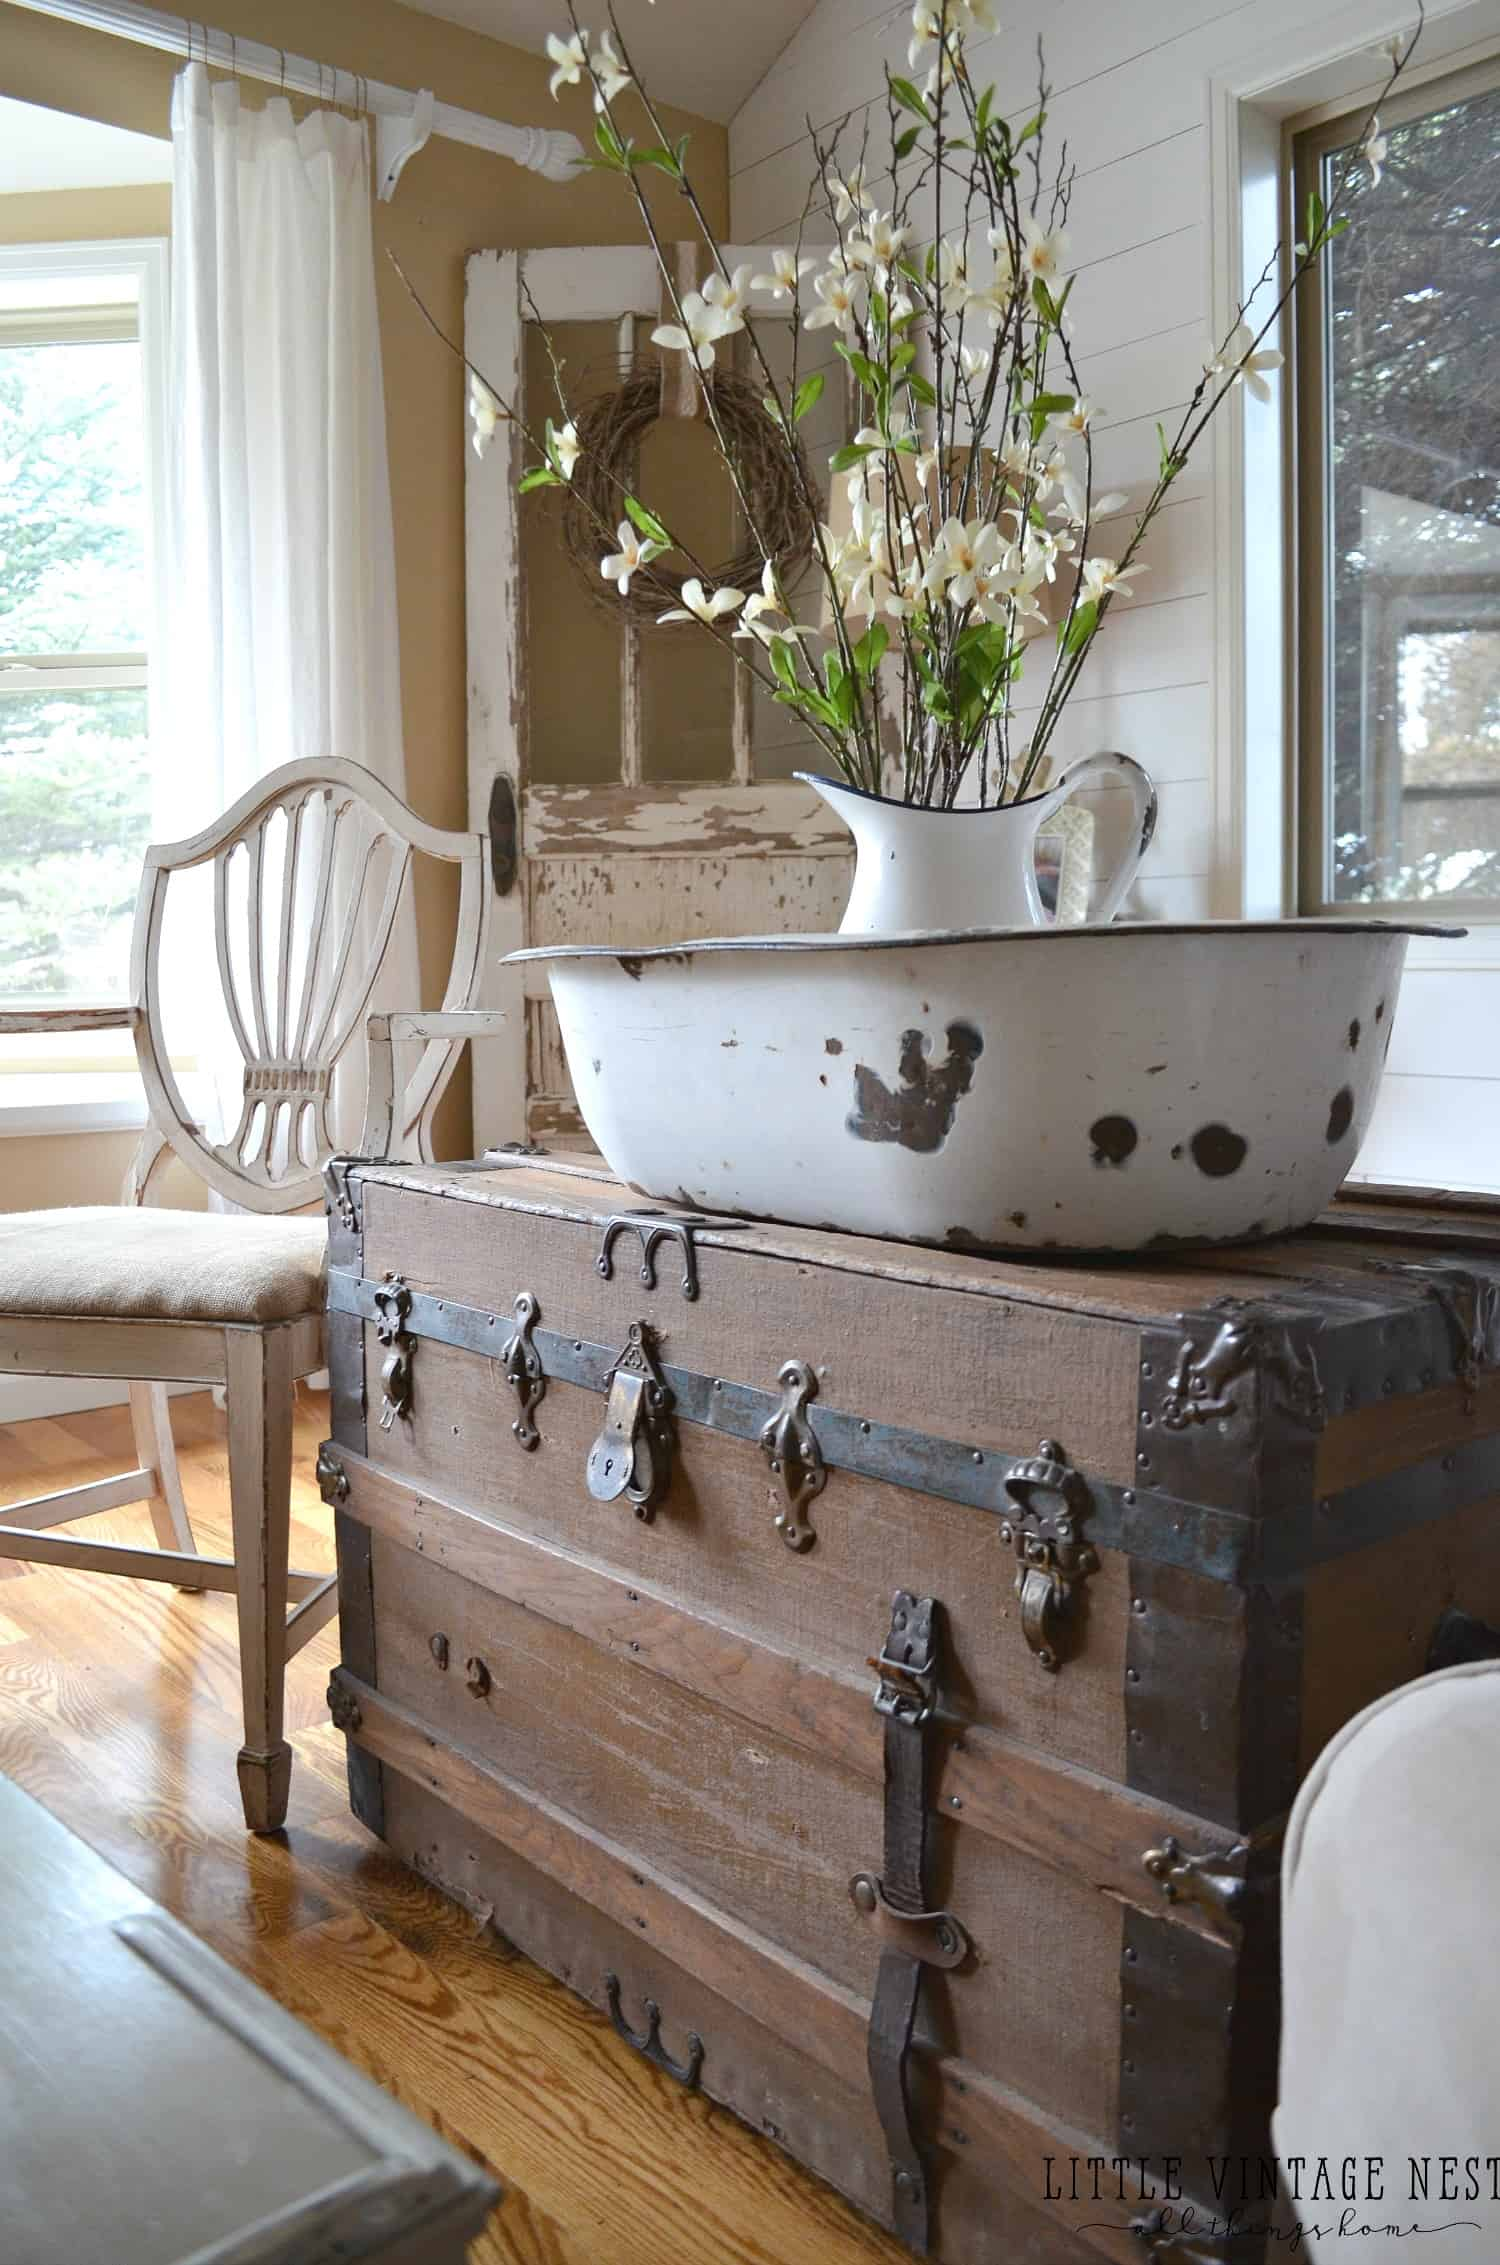 15 Vintage Decor Ideas That Are Sure To Inspire